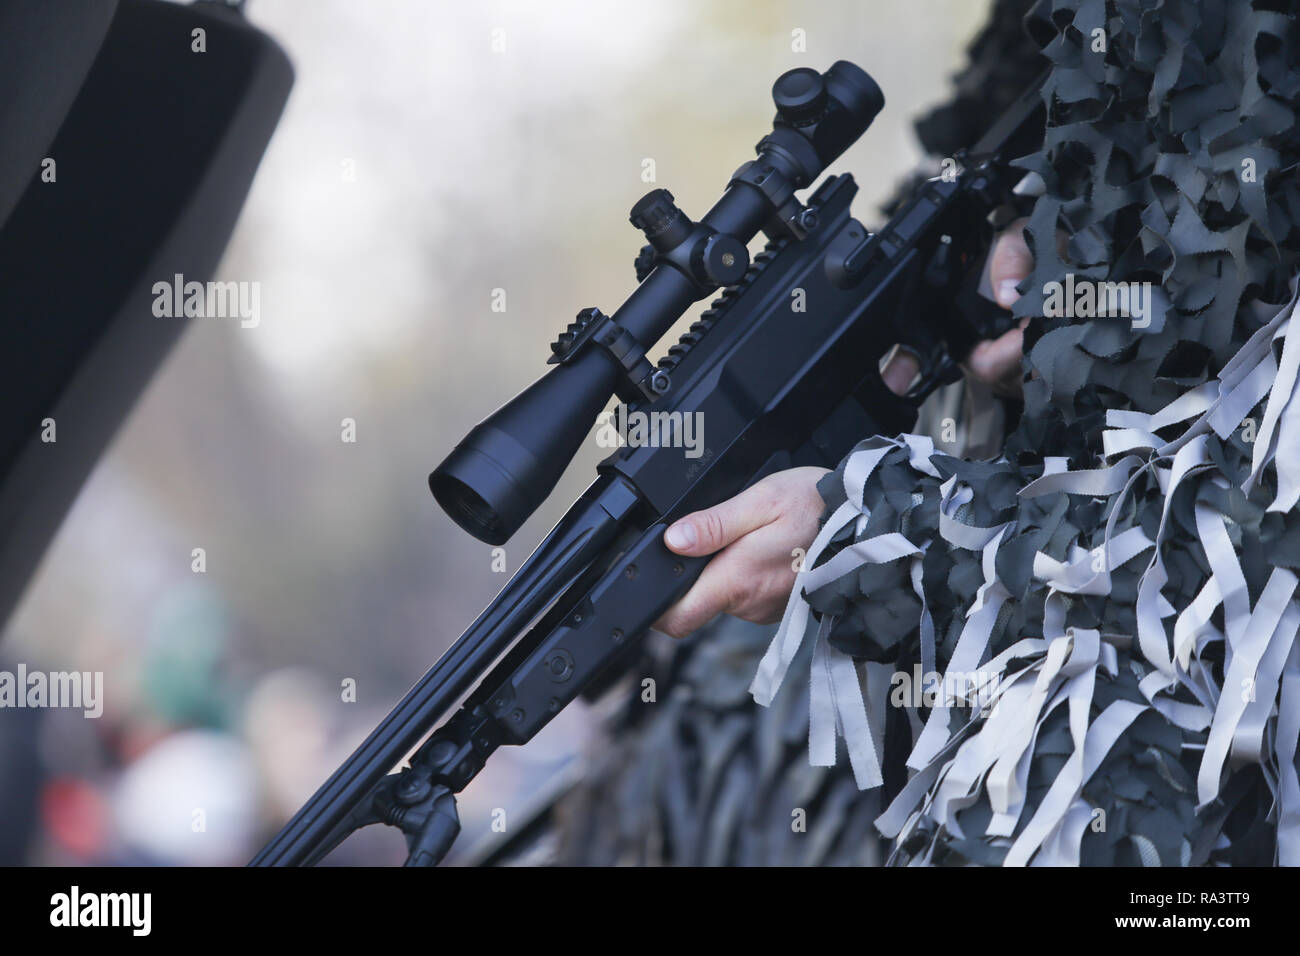 Details with the hands of an army sniper holding his rifle - Stock Image